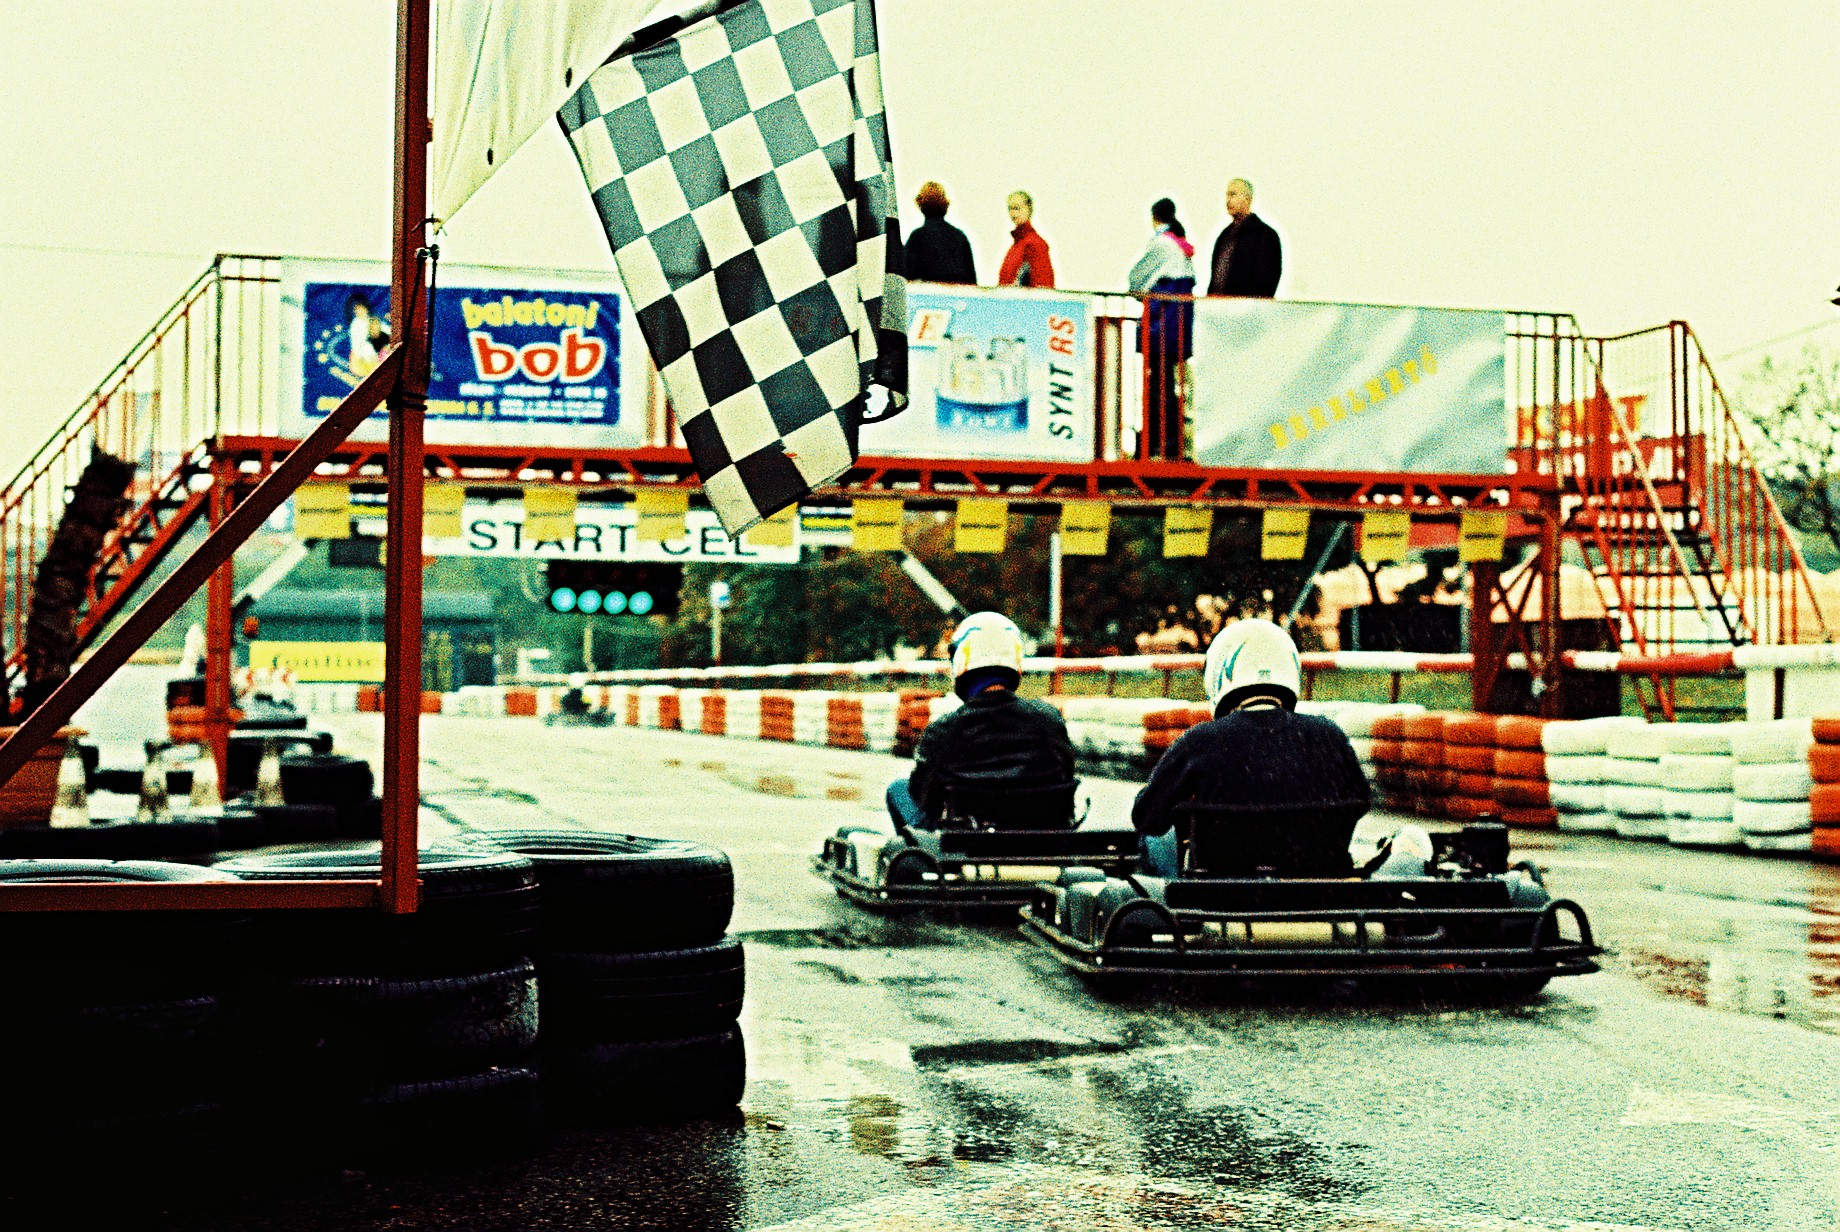 Karting ext rieur enterrement vie de gar on riga evg for Karting exterieur